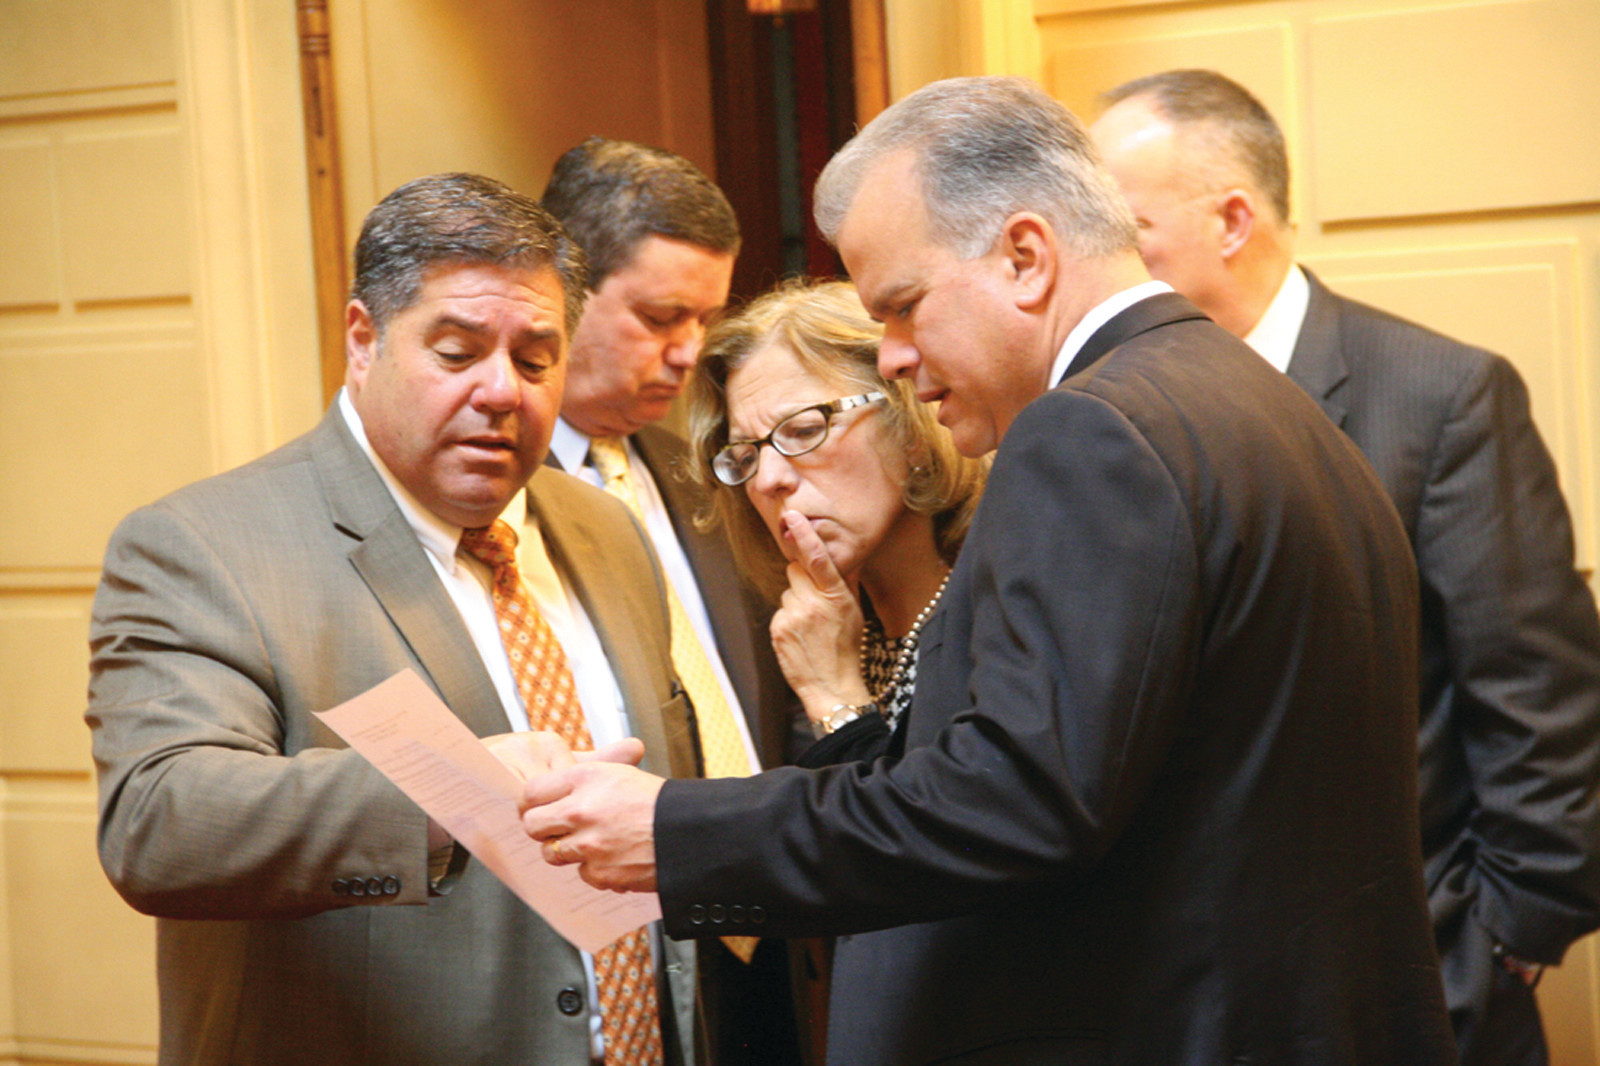 A DAY FOR FRESHMEN LEGISLATORS: House Speaker Nicholas Mattiello and Senate President Teresa Paiva Weed review the day's schedule with Frank Montanaro of Cranston, the director of the Joint Committee on Legislative Services prior to Tuesday's orientation for freshmen legislators.